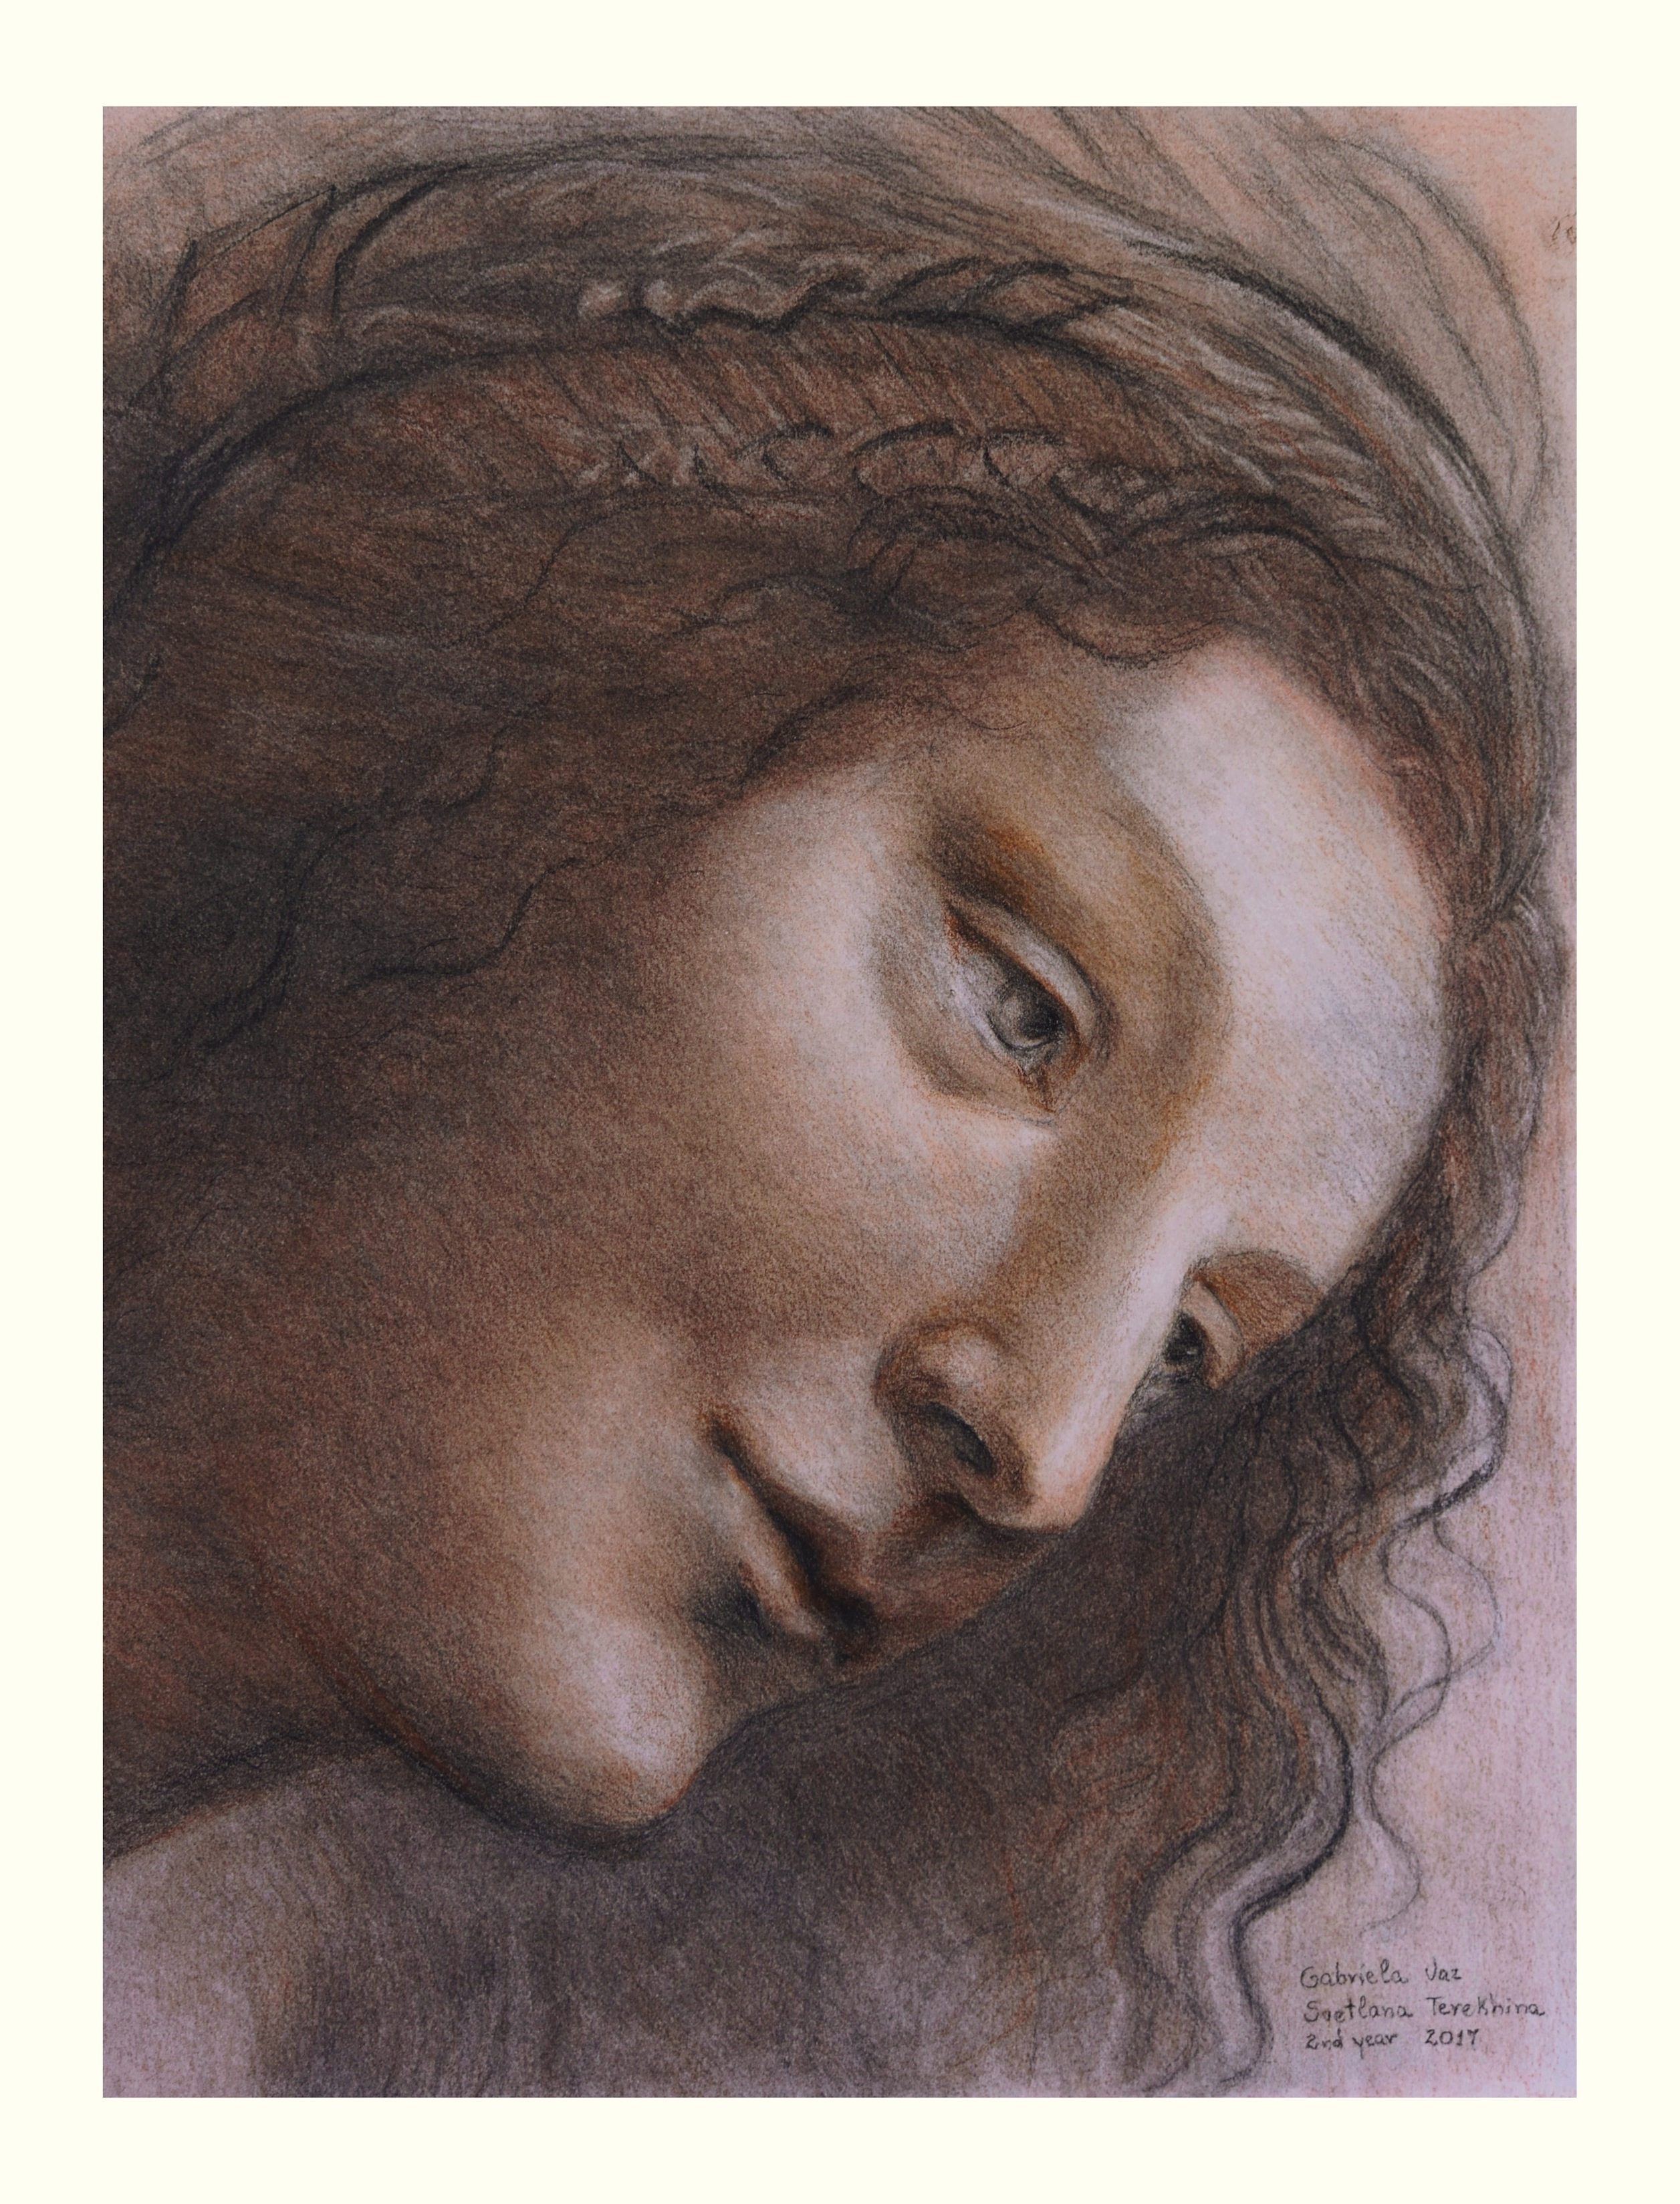 Copy based on the drawing Head of the Virgin (1510-1513) by Leonardo da Vinci, soft pastel on toned paper, 40 x 30 cm, 2017